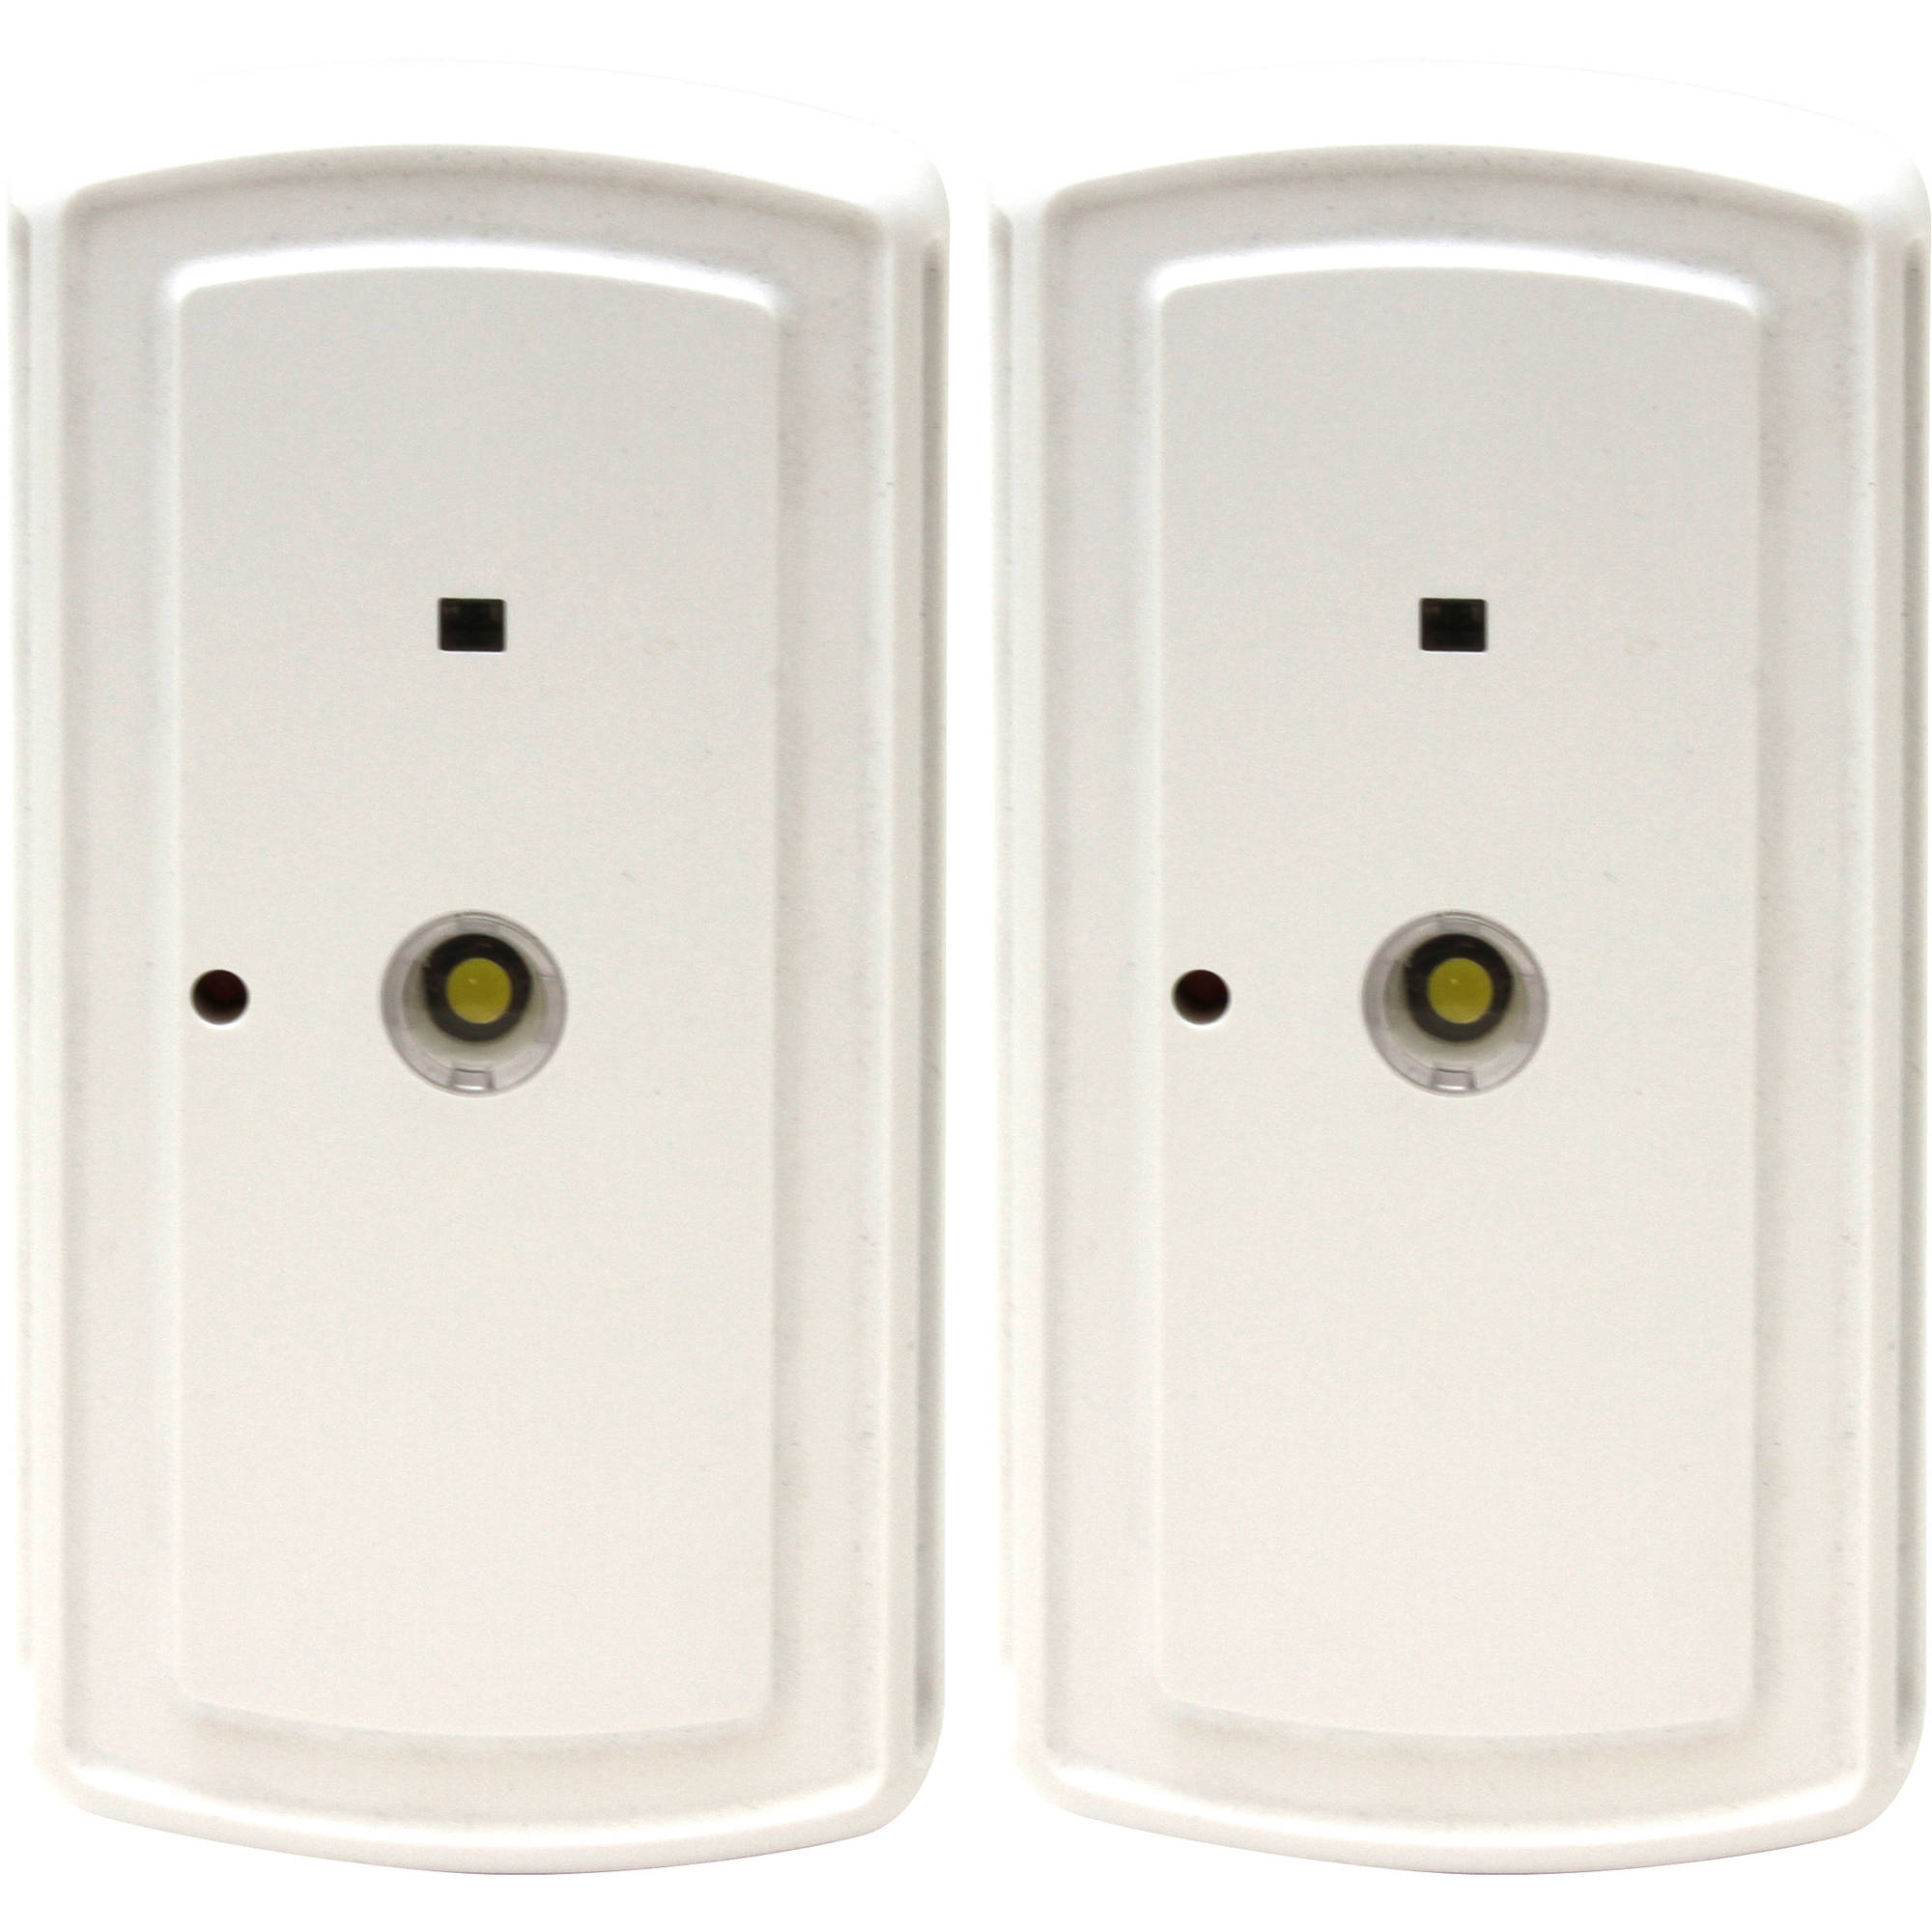 Lumina Home Safety LED Light, Double Pack